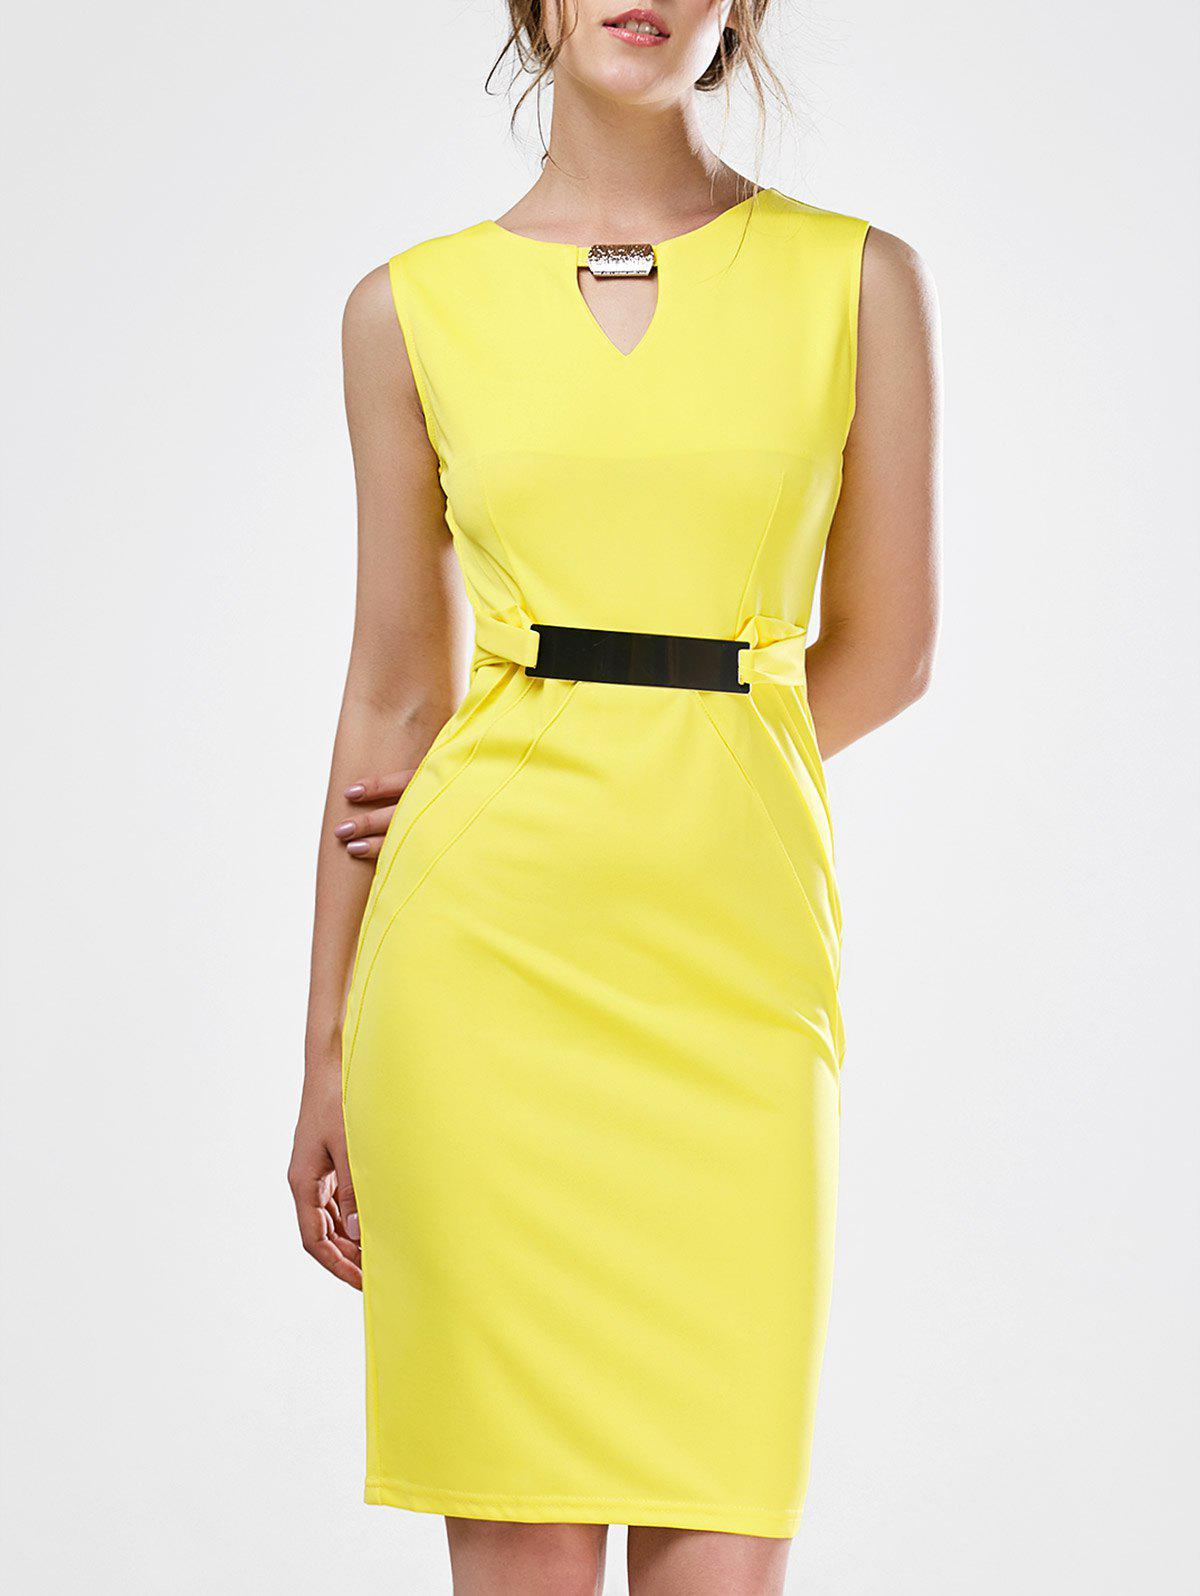 Keyhole Sleeveless Mini Sheath Work Dress - YELLOW S